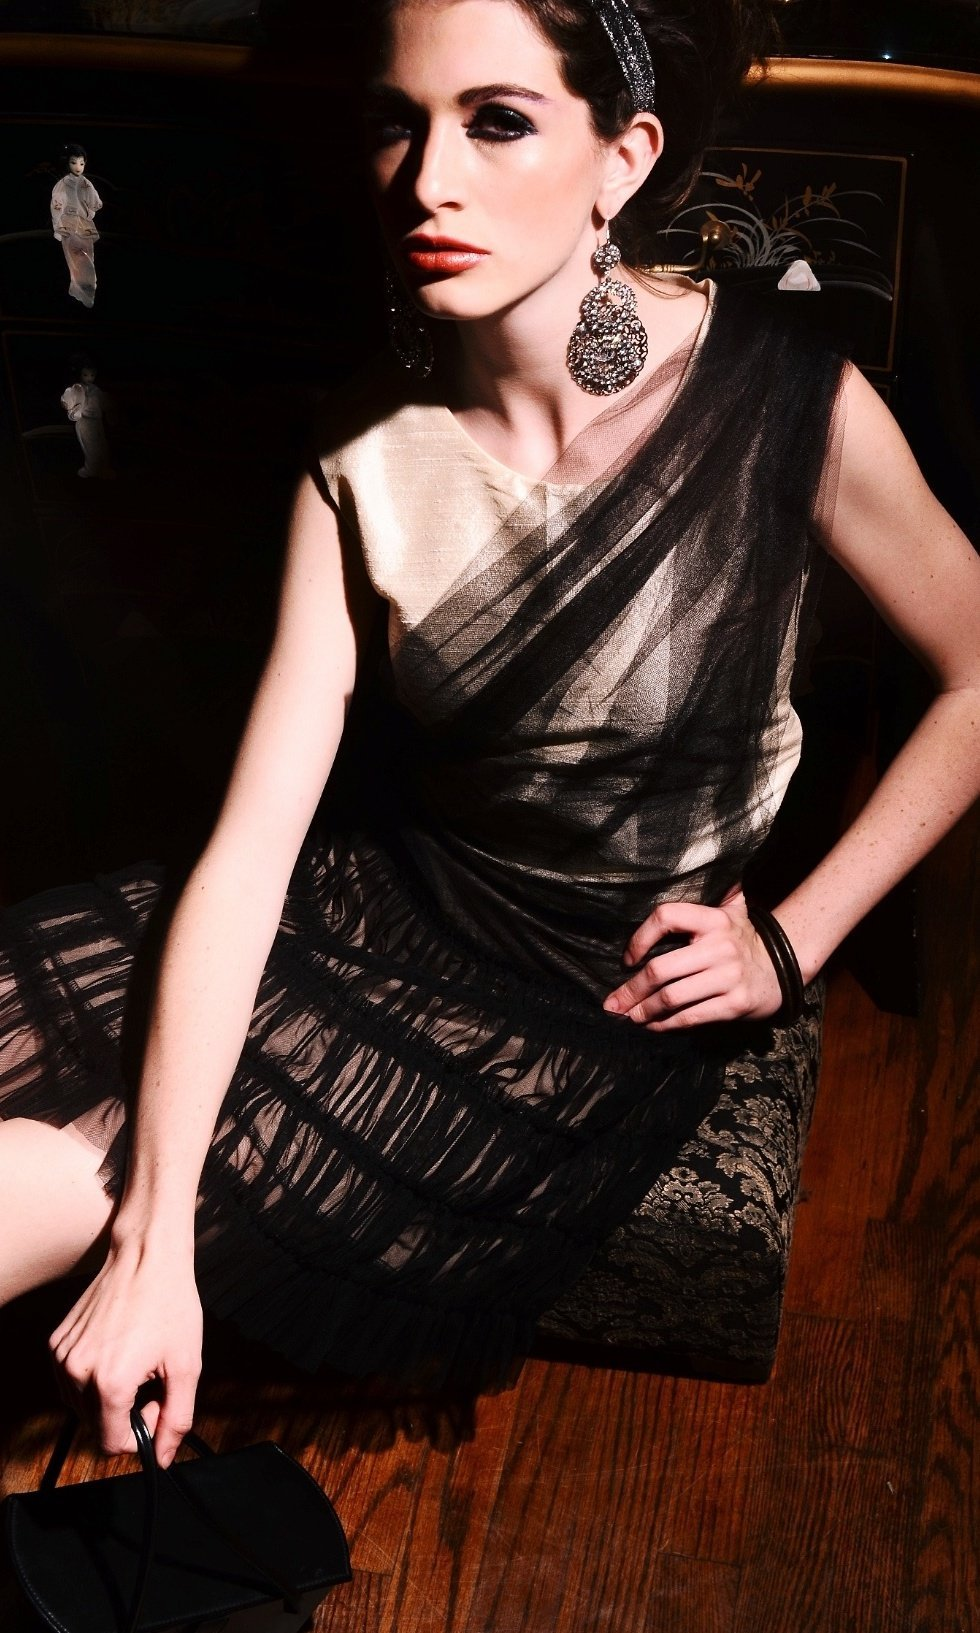 LAUREN FIRR- TEEN BEAUTY, MODEL has appeared in fashion shows for NYC designers.